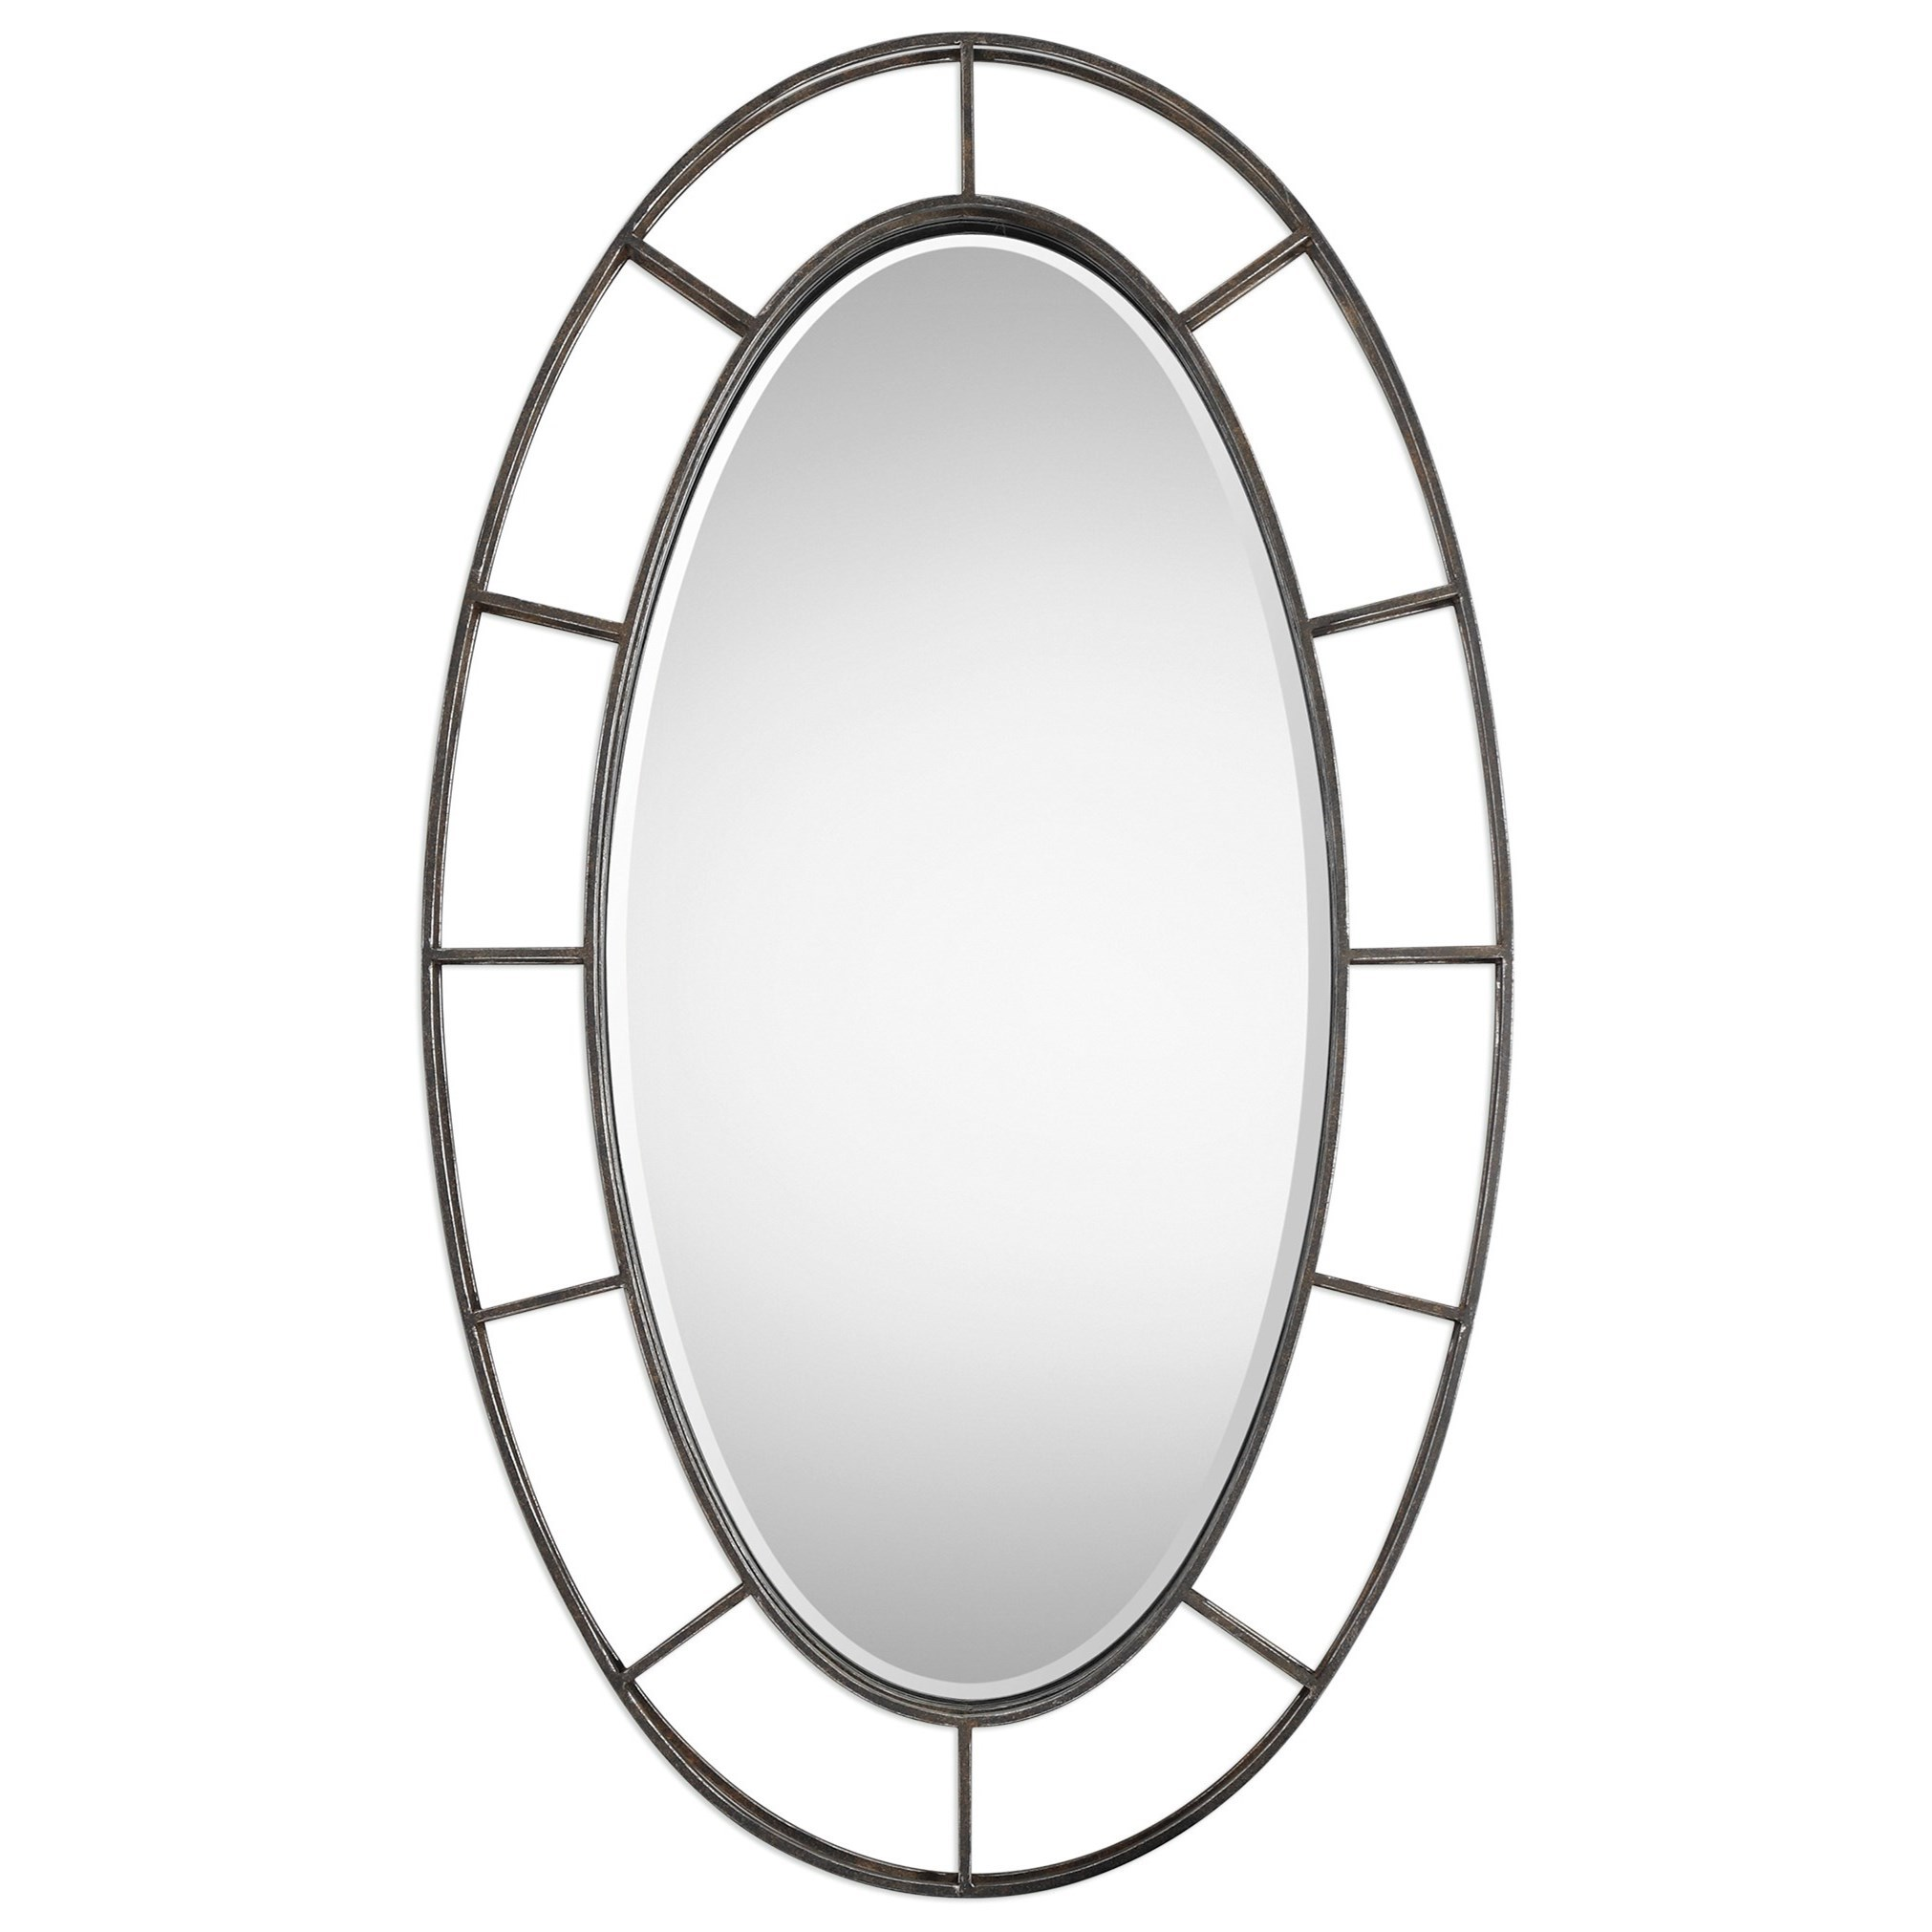 Uttermost Mirrors  Gilliam Oval Mirror - Item Number: 09182